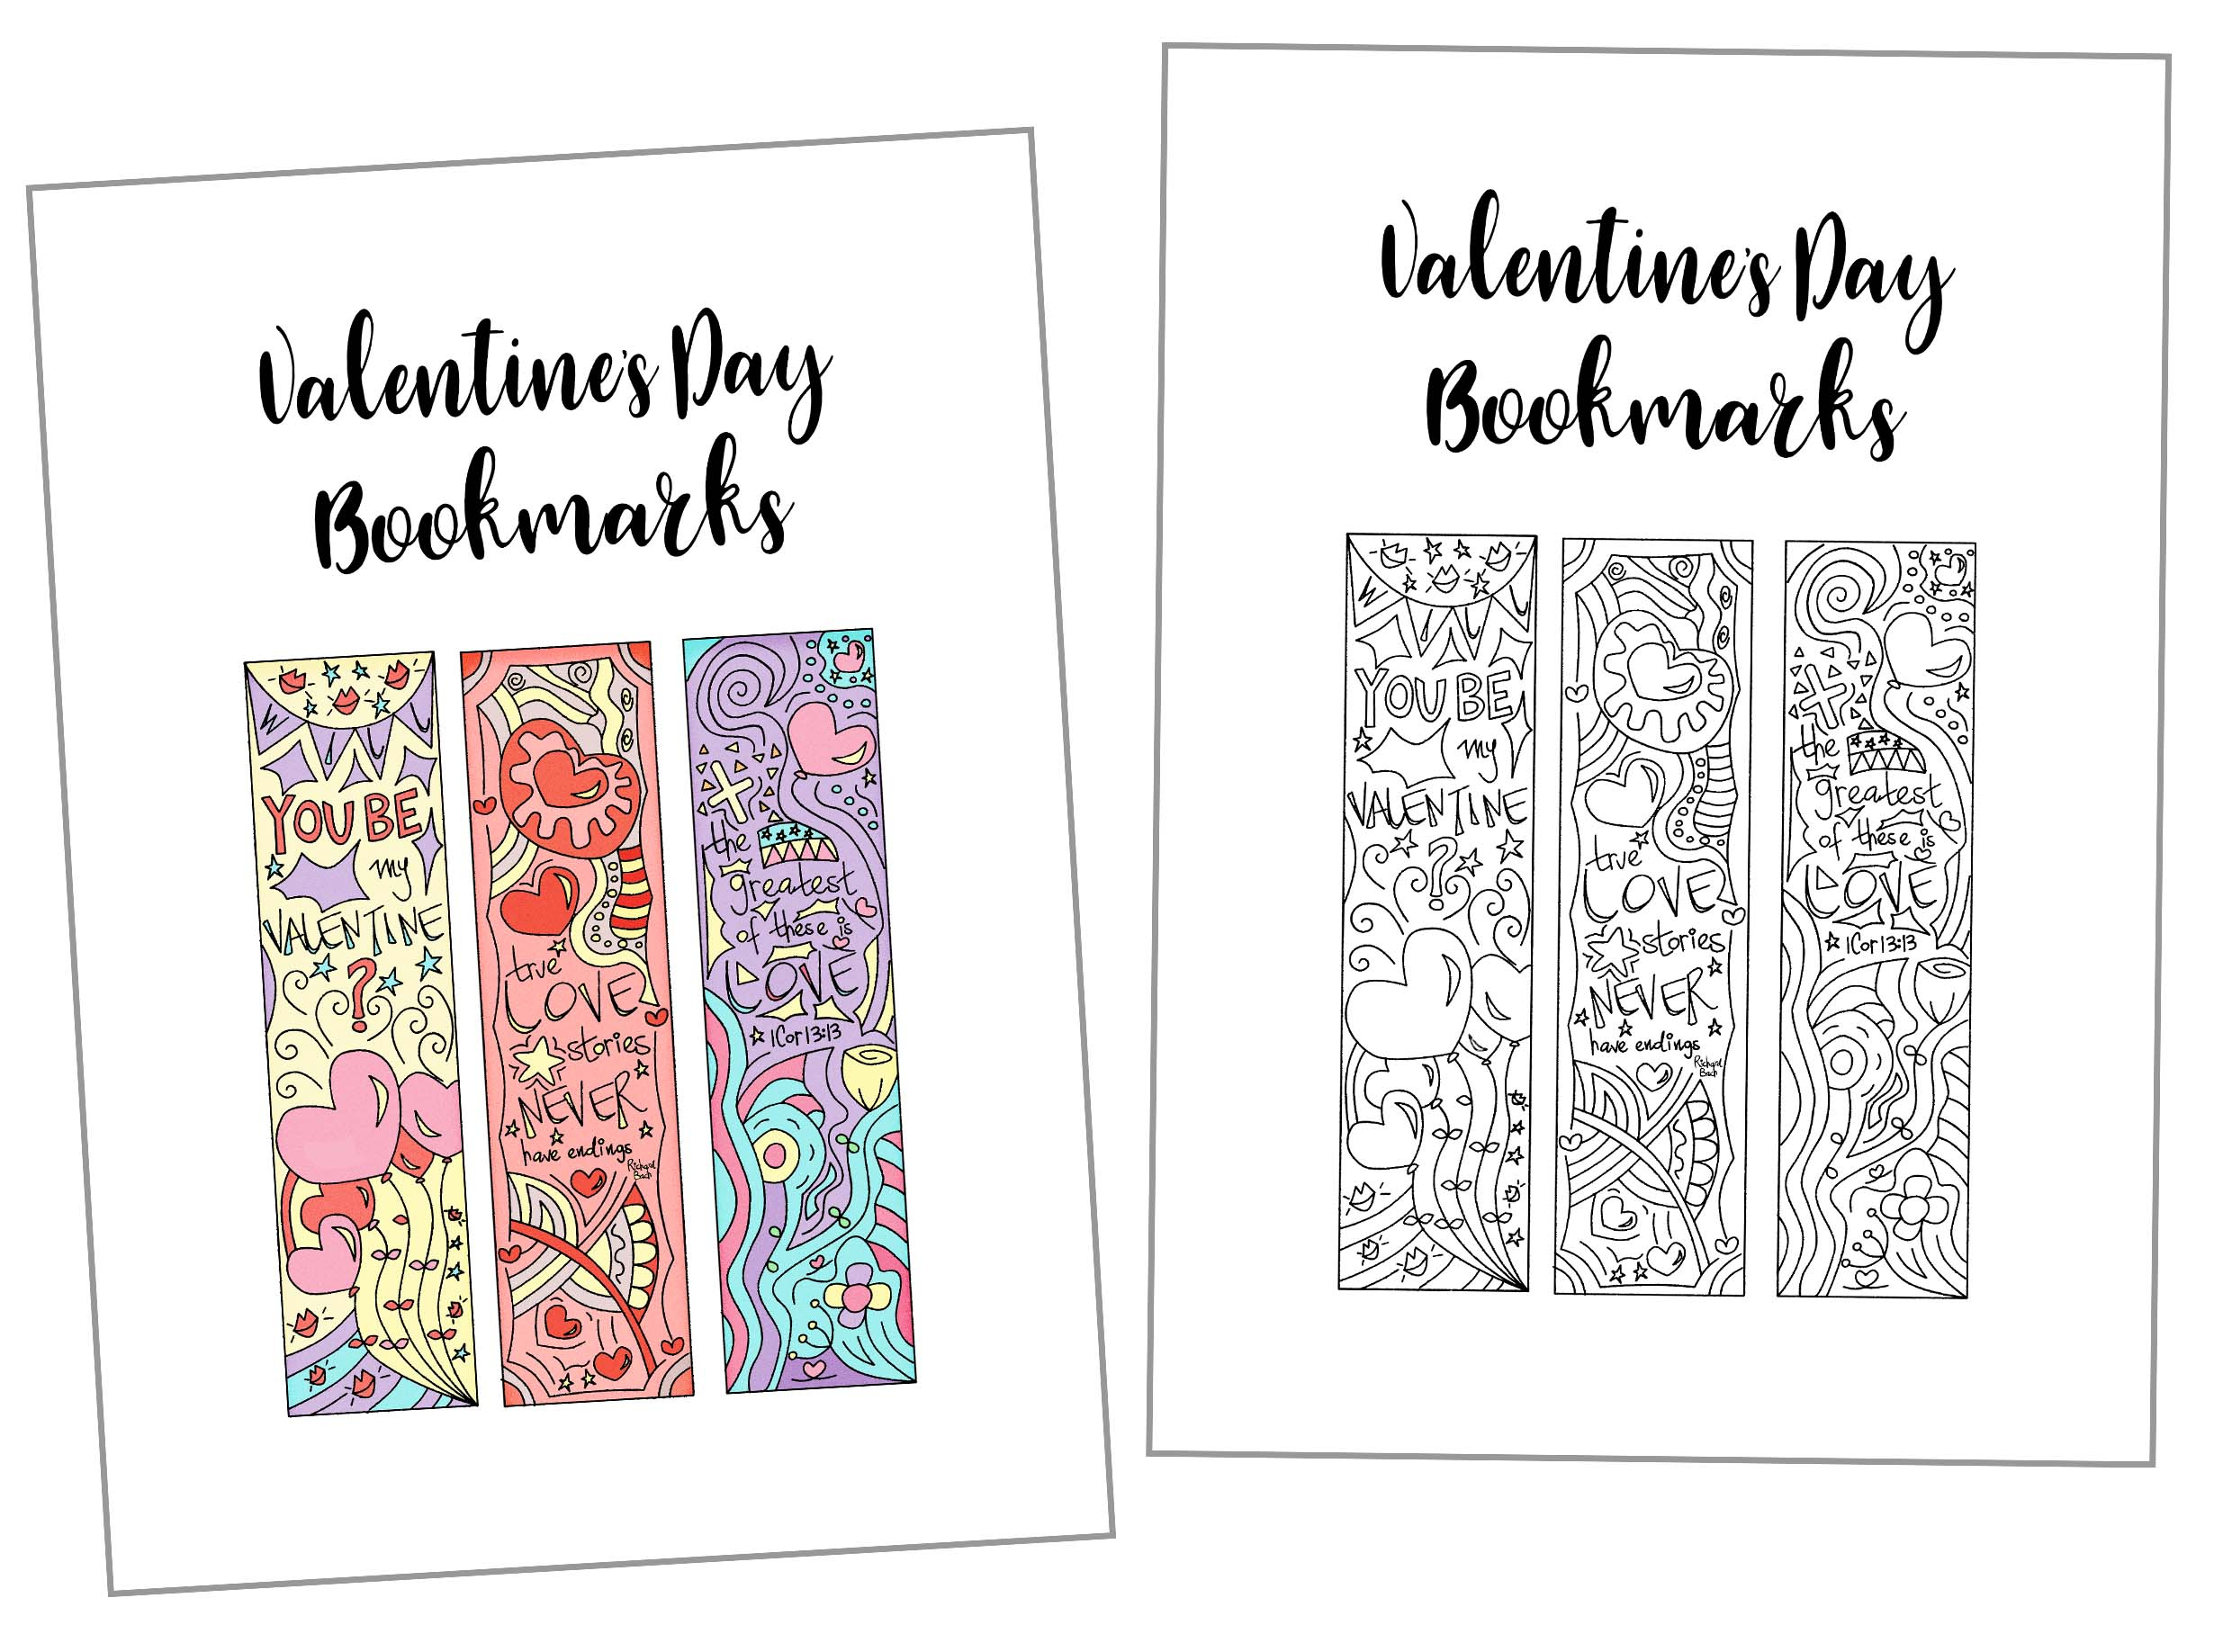 Coloring Valentine's Day Bookmarks Free Printable ~ Daydream Into - Free Printable Bookmarks For Libraries